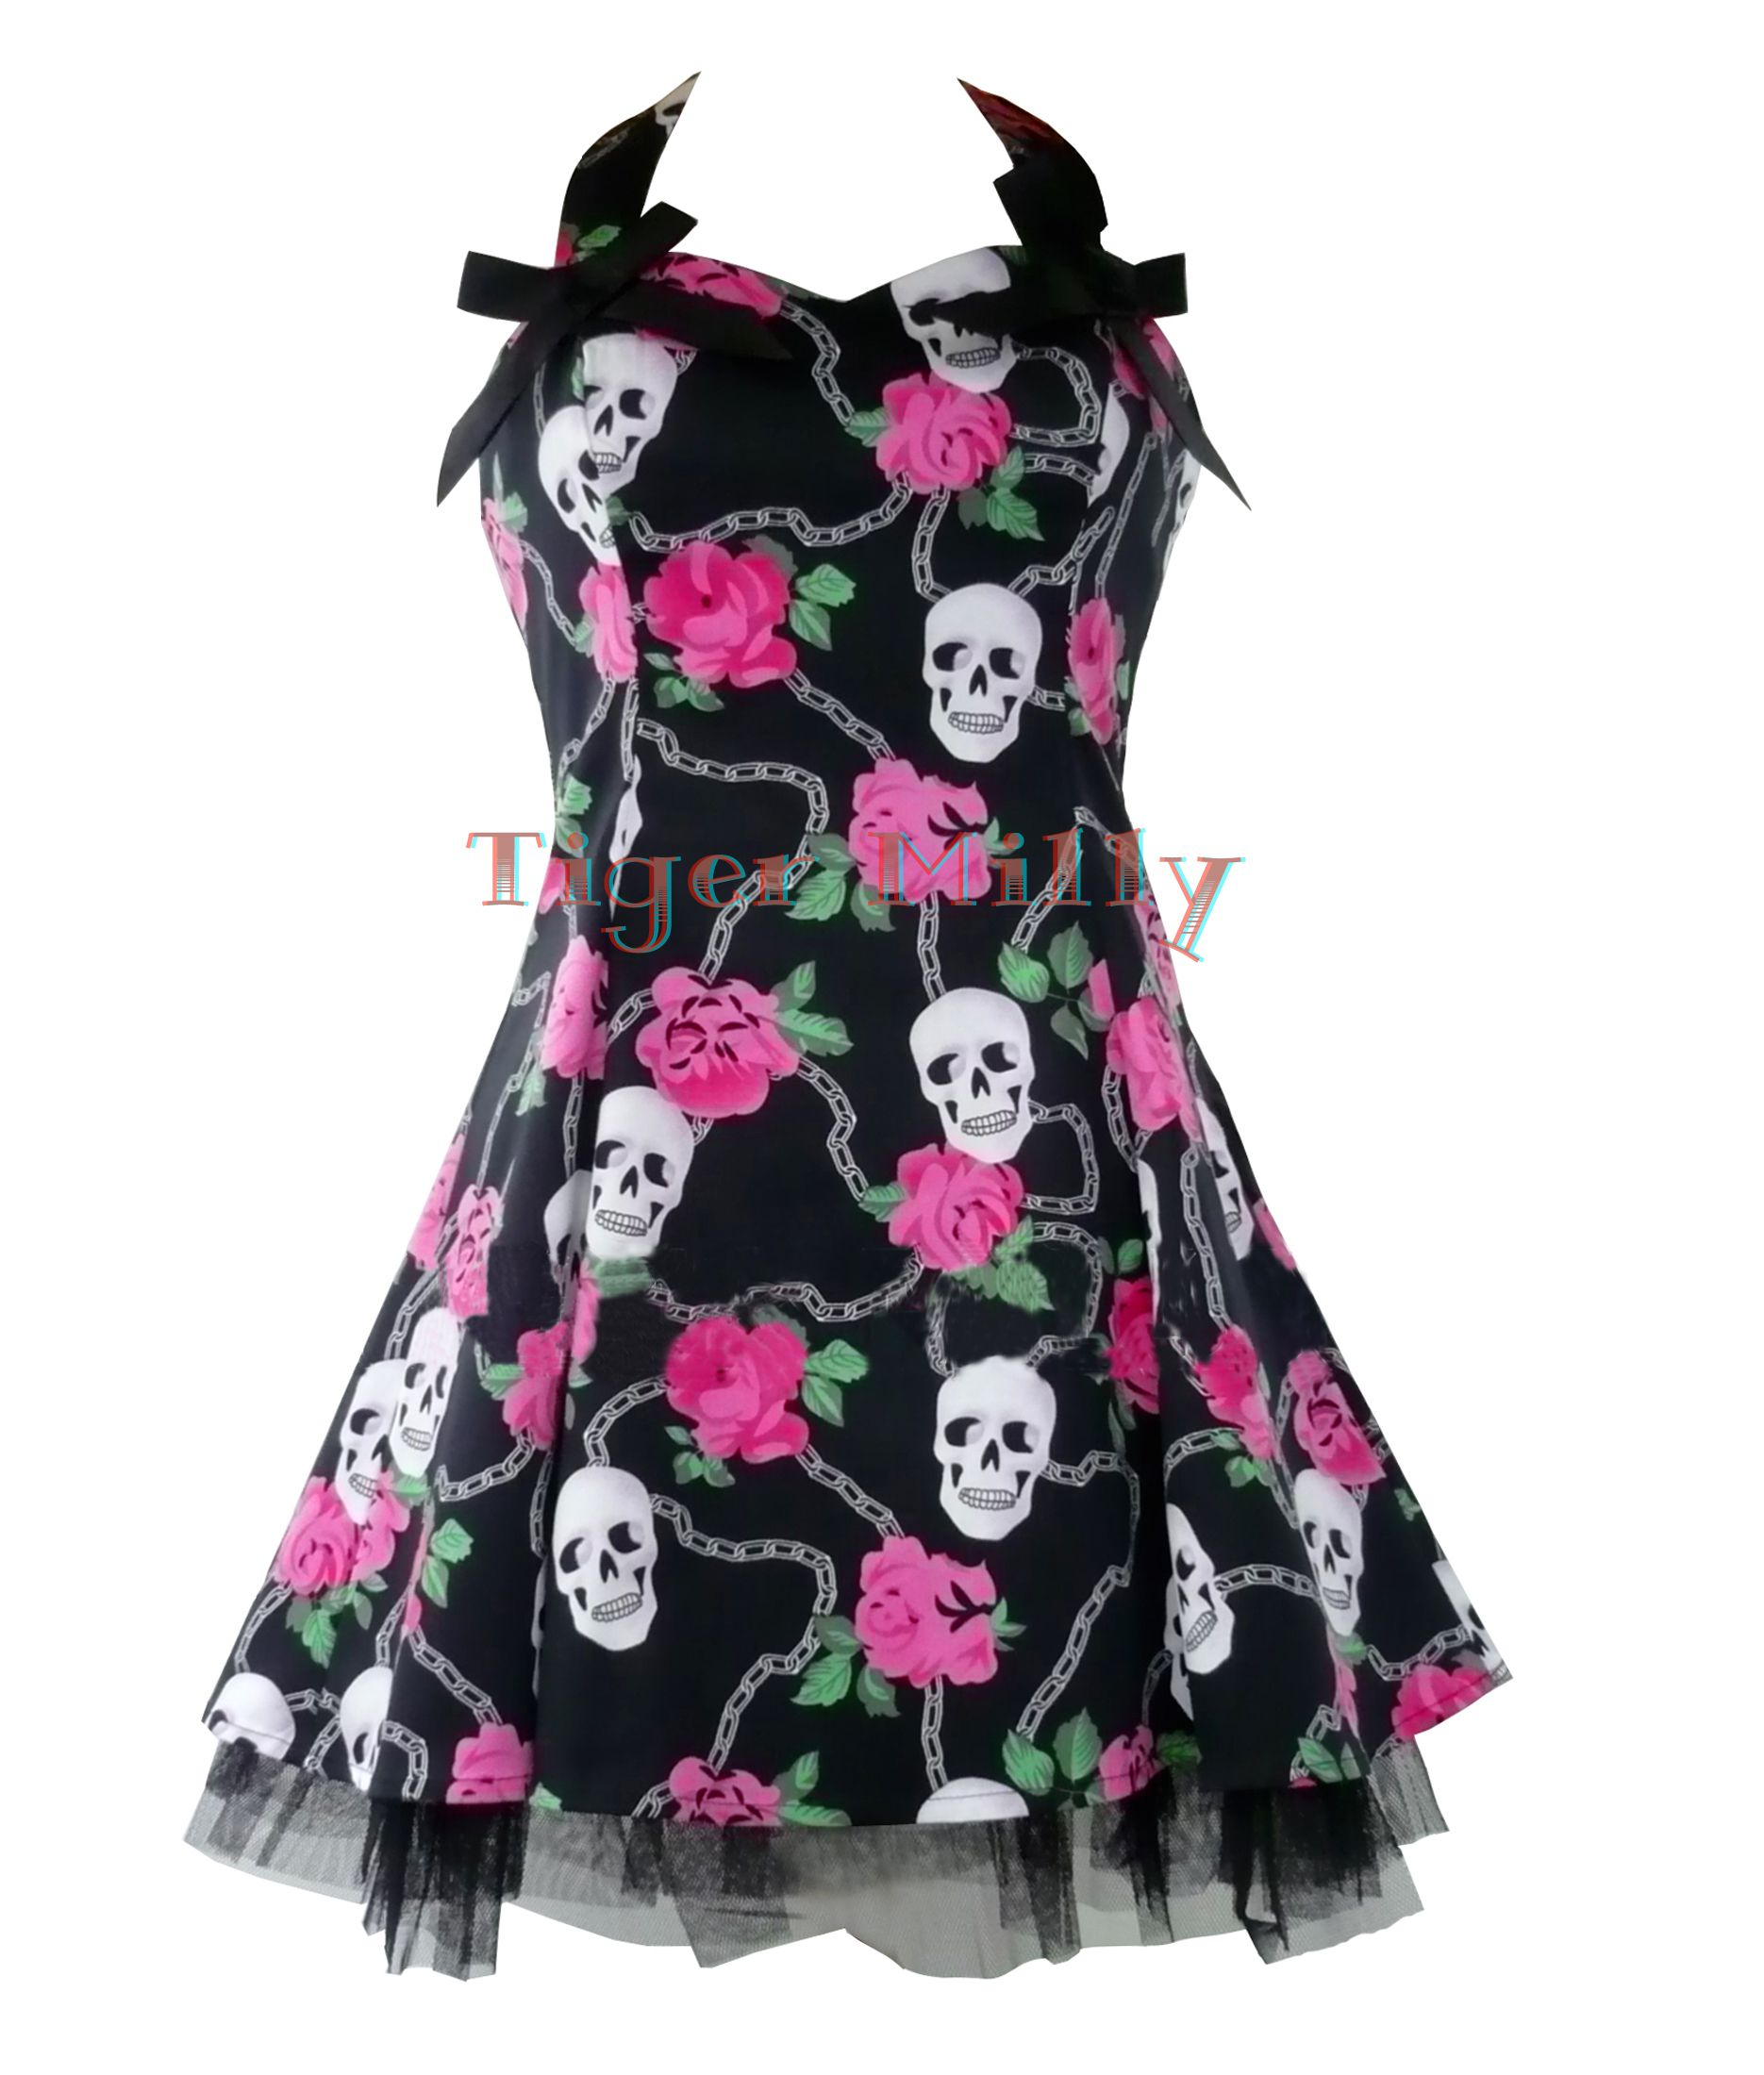 H r london goth skull rose mini dress emo black uk size - Emo rose pictures ...